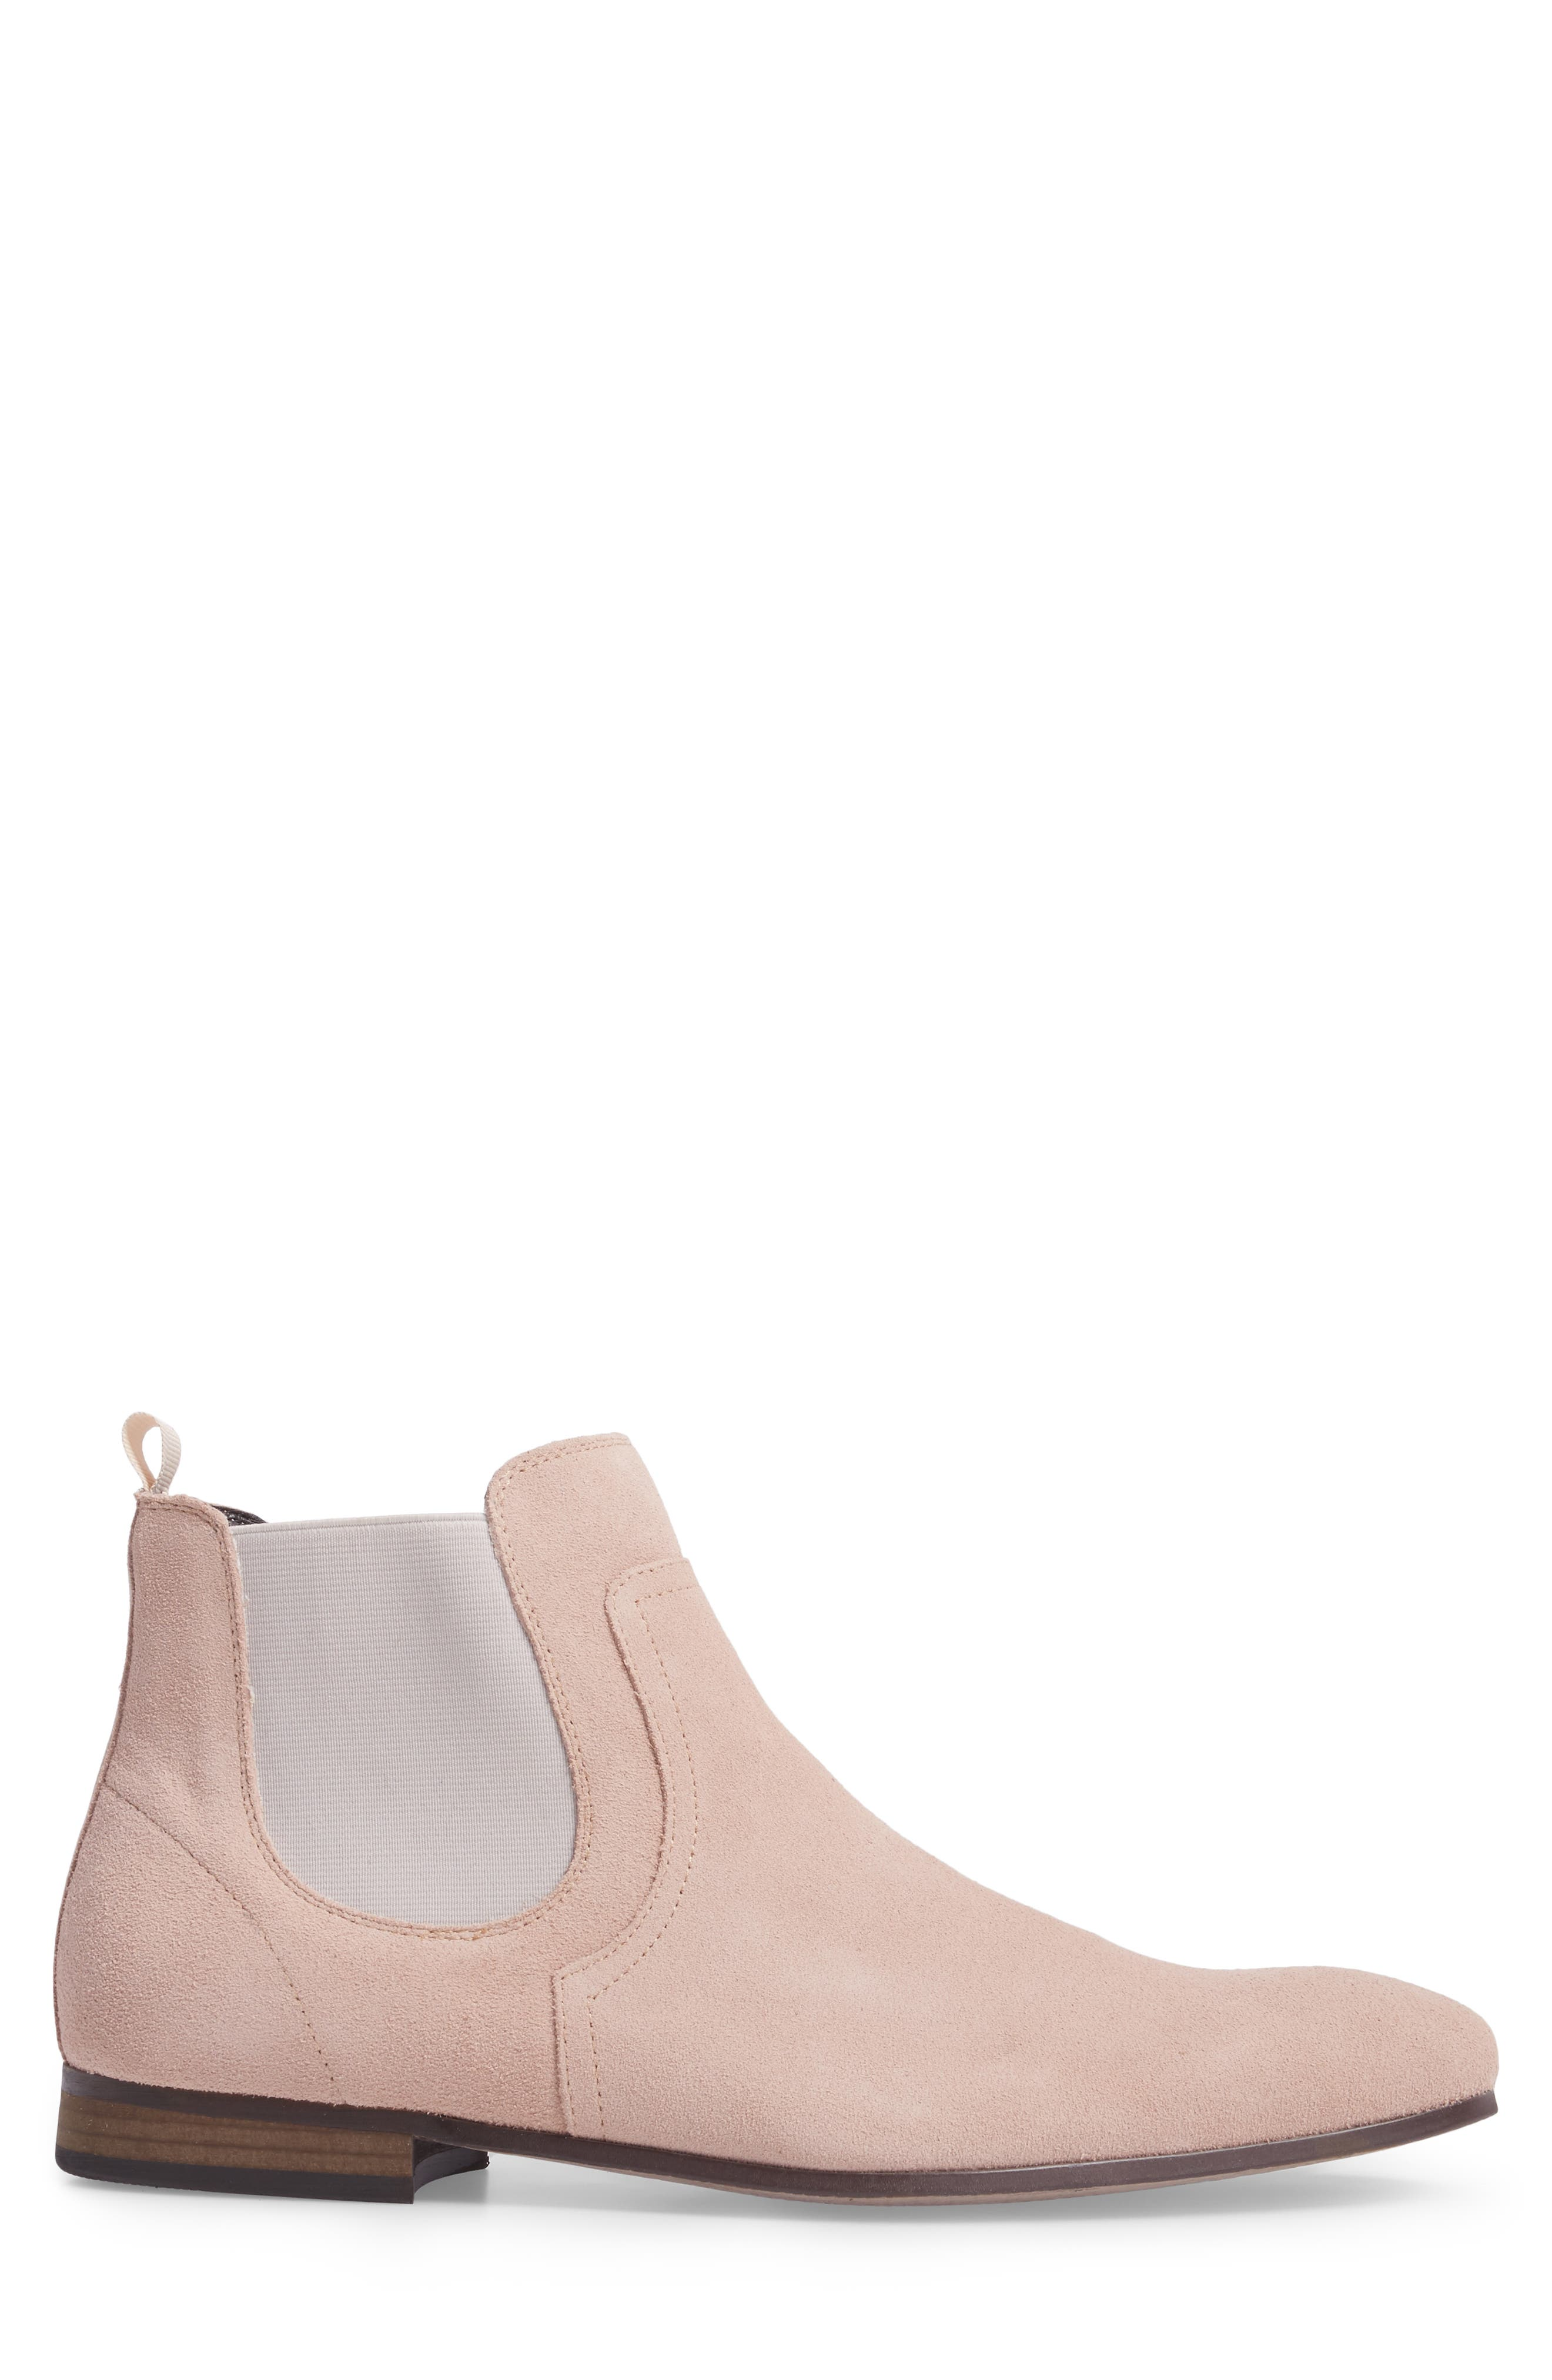 Brysen Chelsea Boot,                             Alternate thumbnail 41, color,